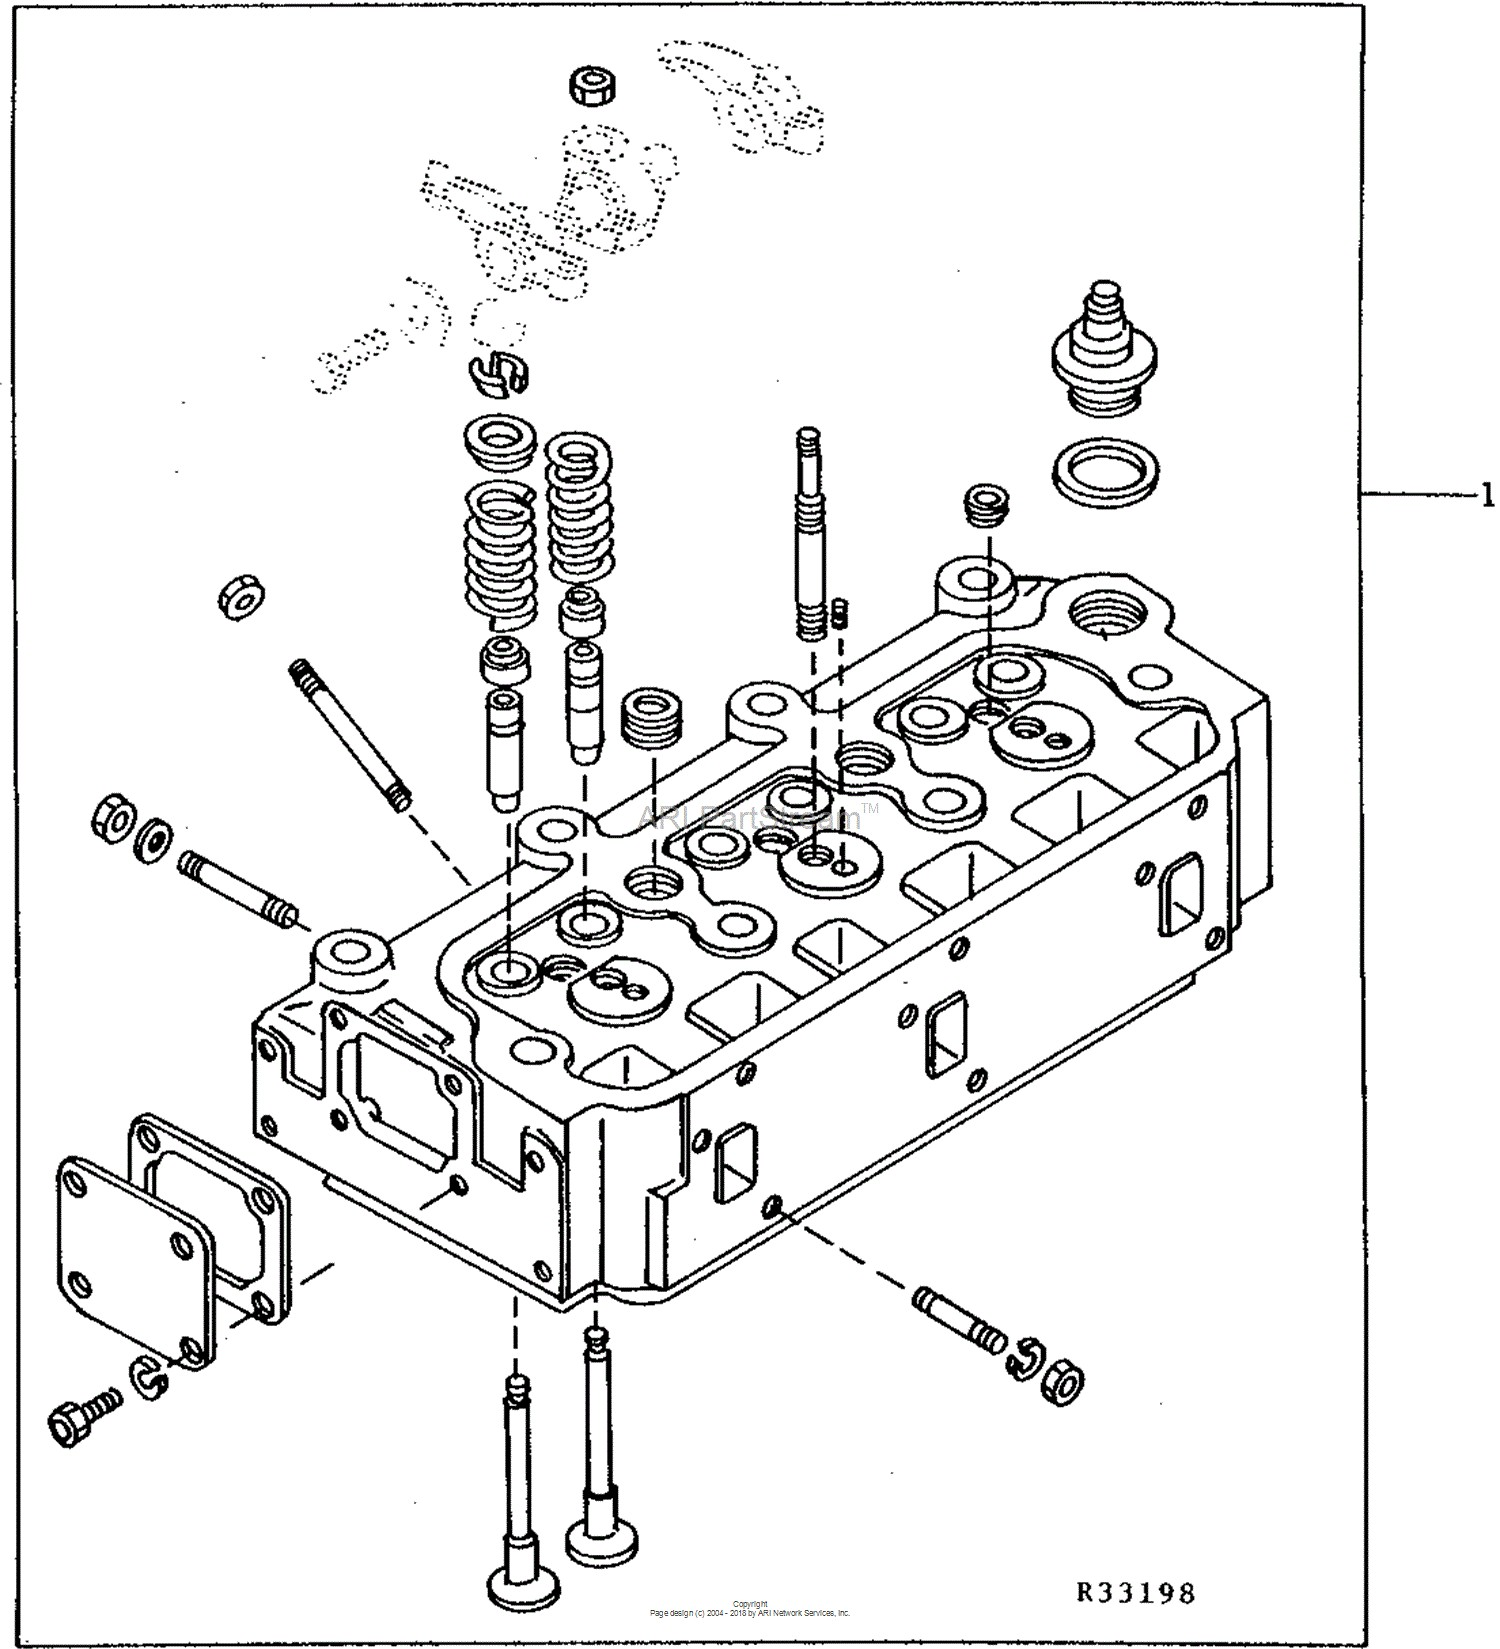 Tractor Engine Diagram John Deere Parts Diagrams John